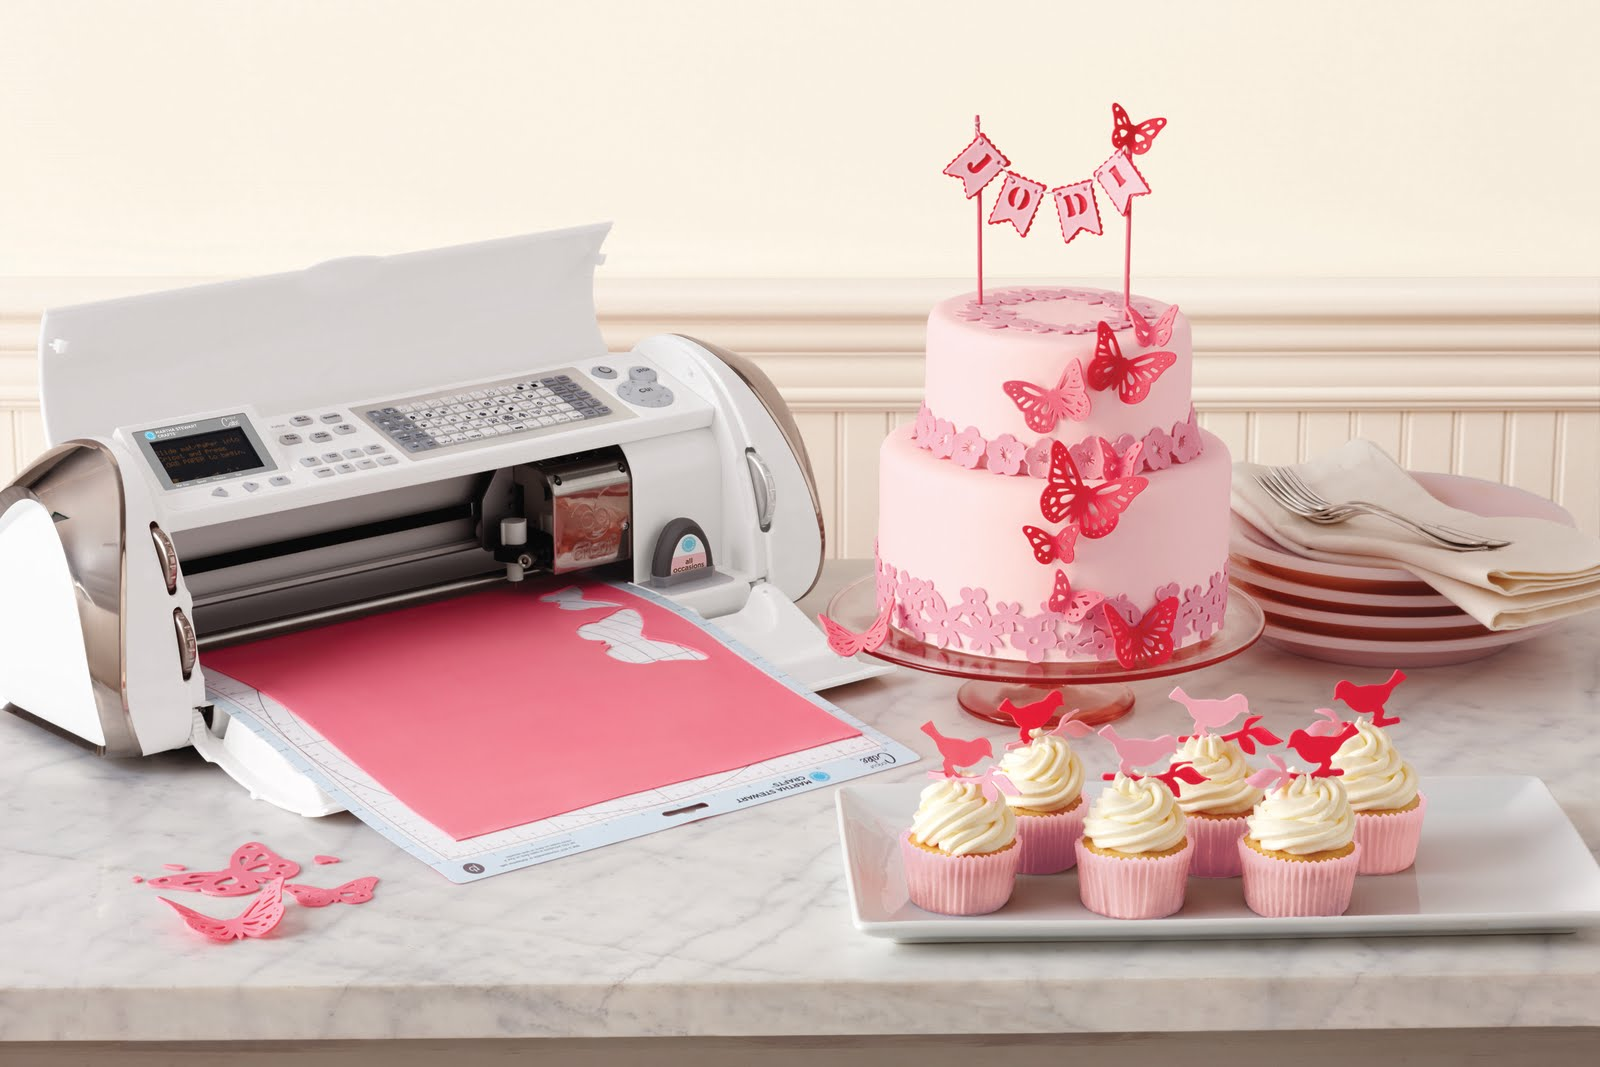 Mille Feuille Cricut Cake Decorating Machine